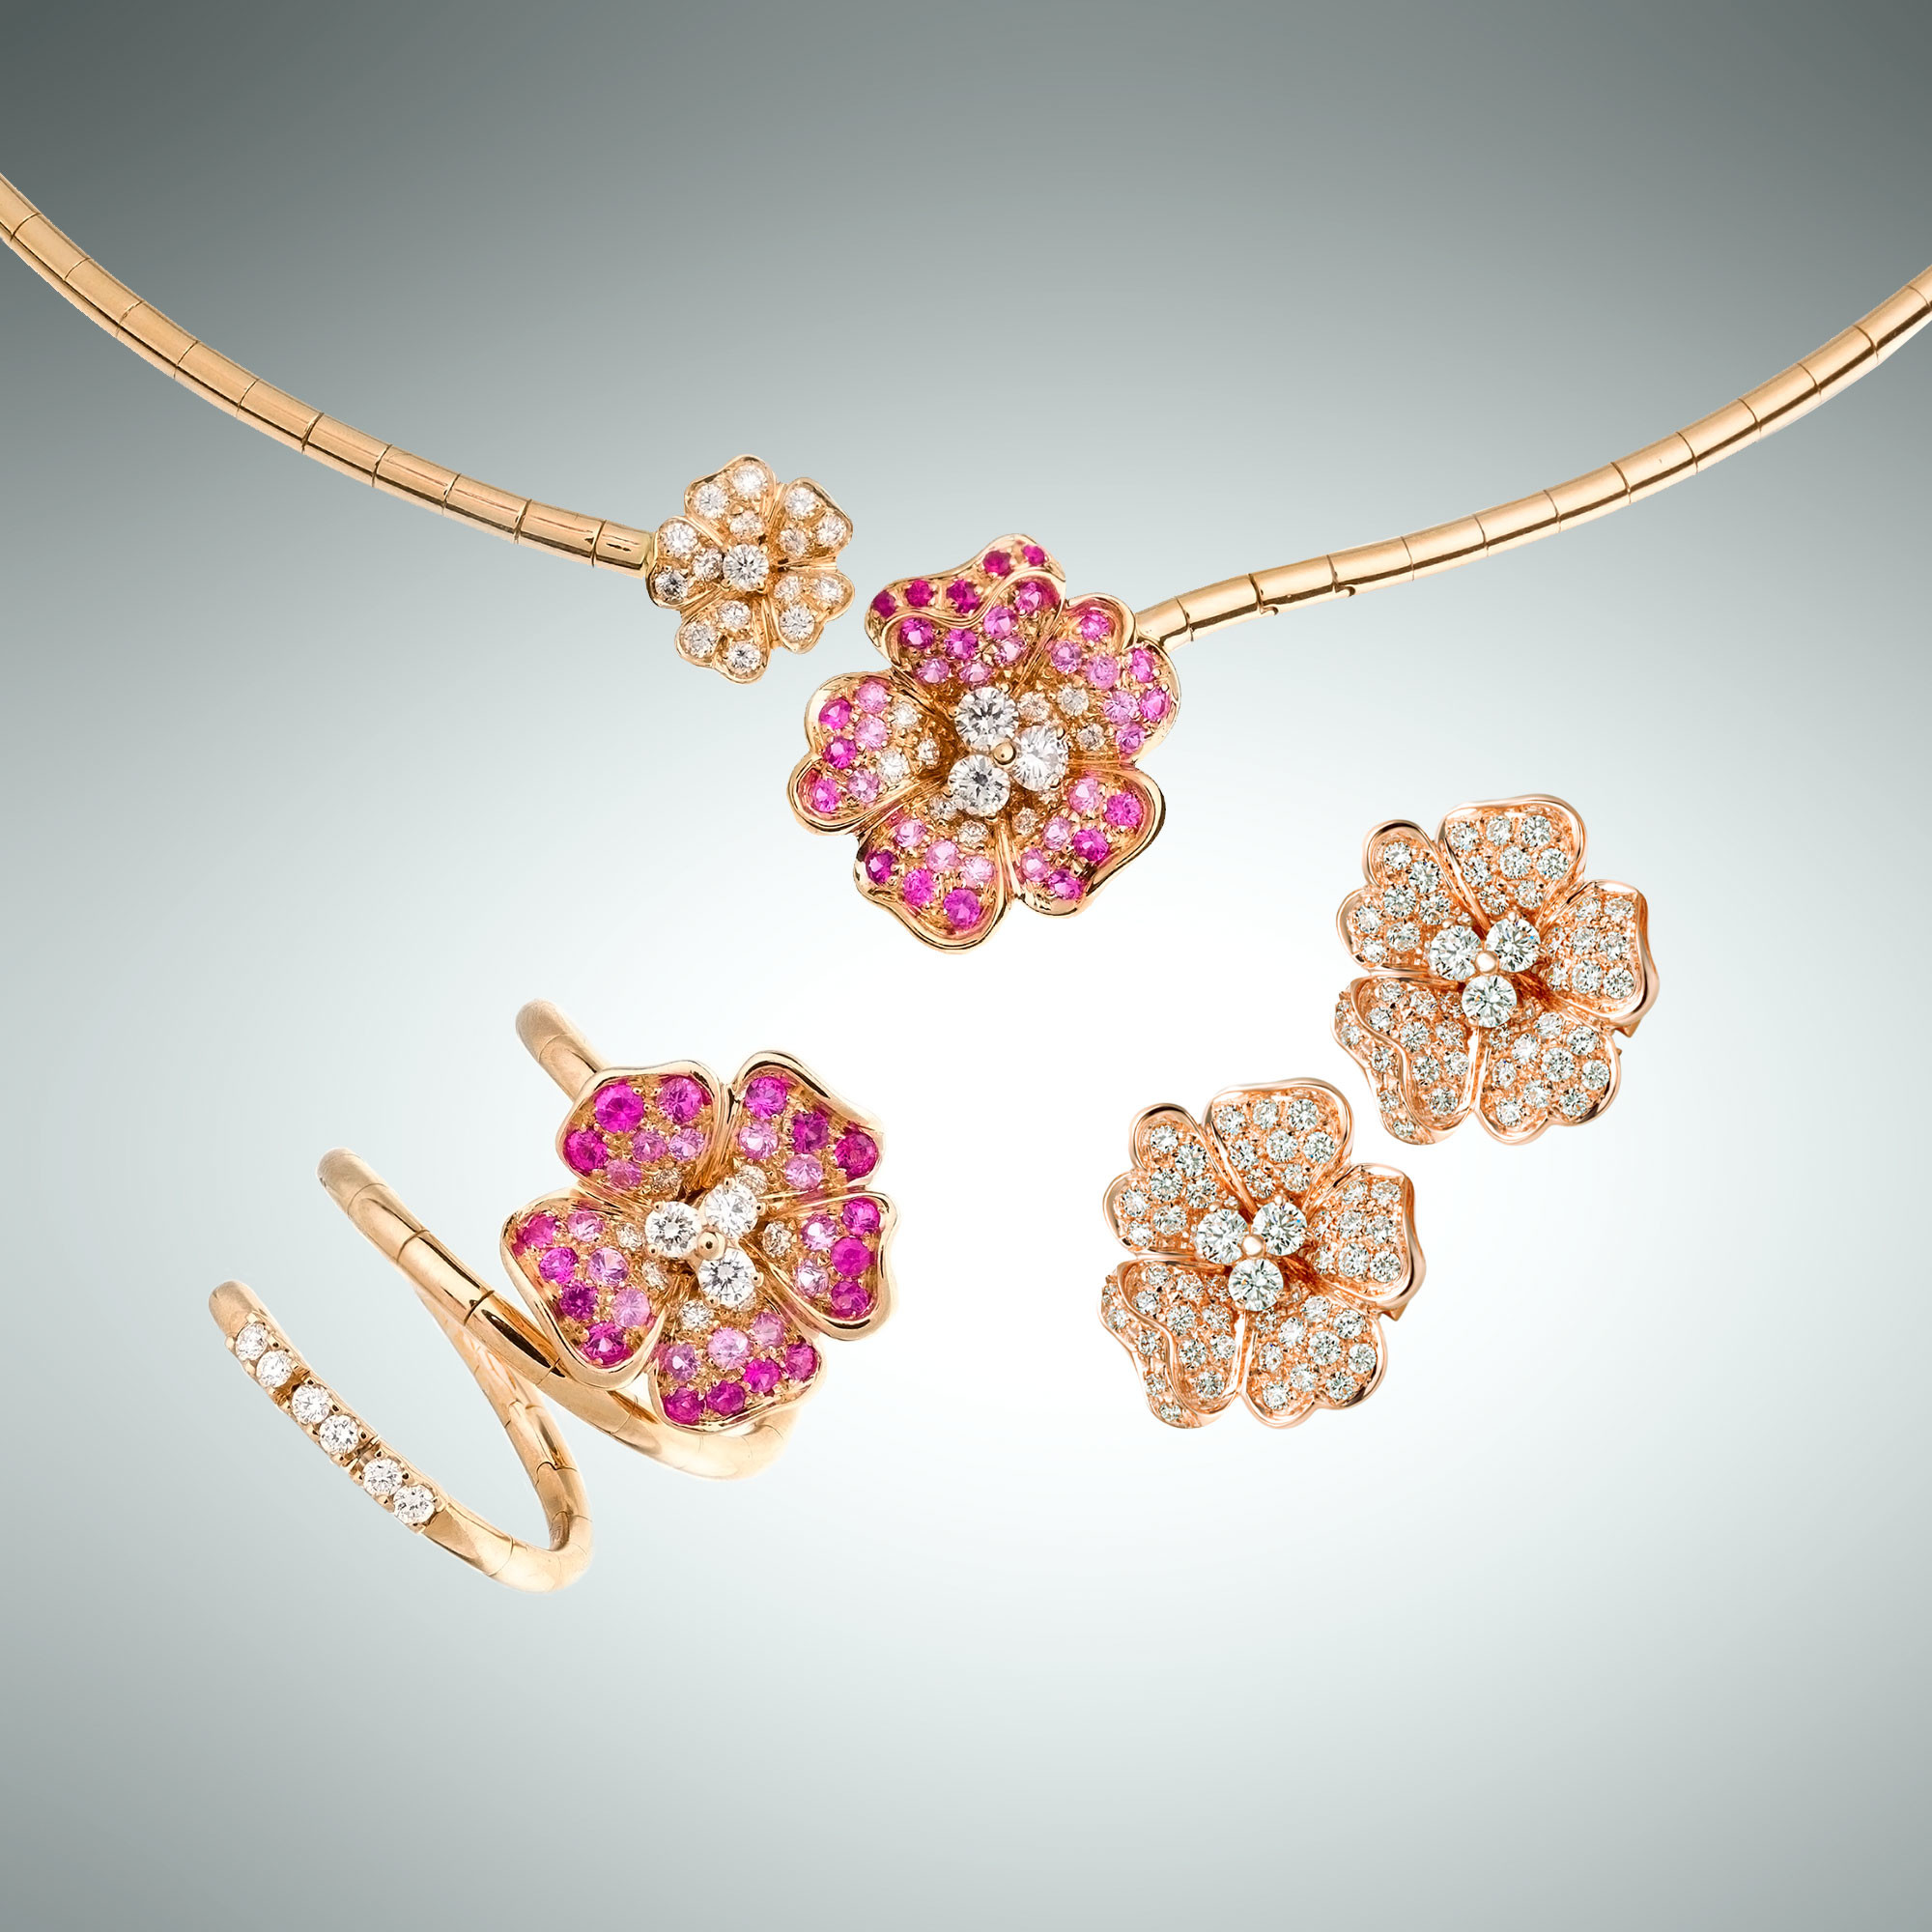 Flora Ring, Necklace and Earrings